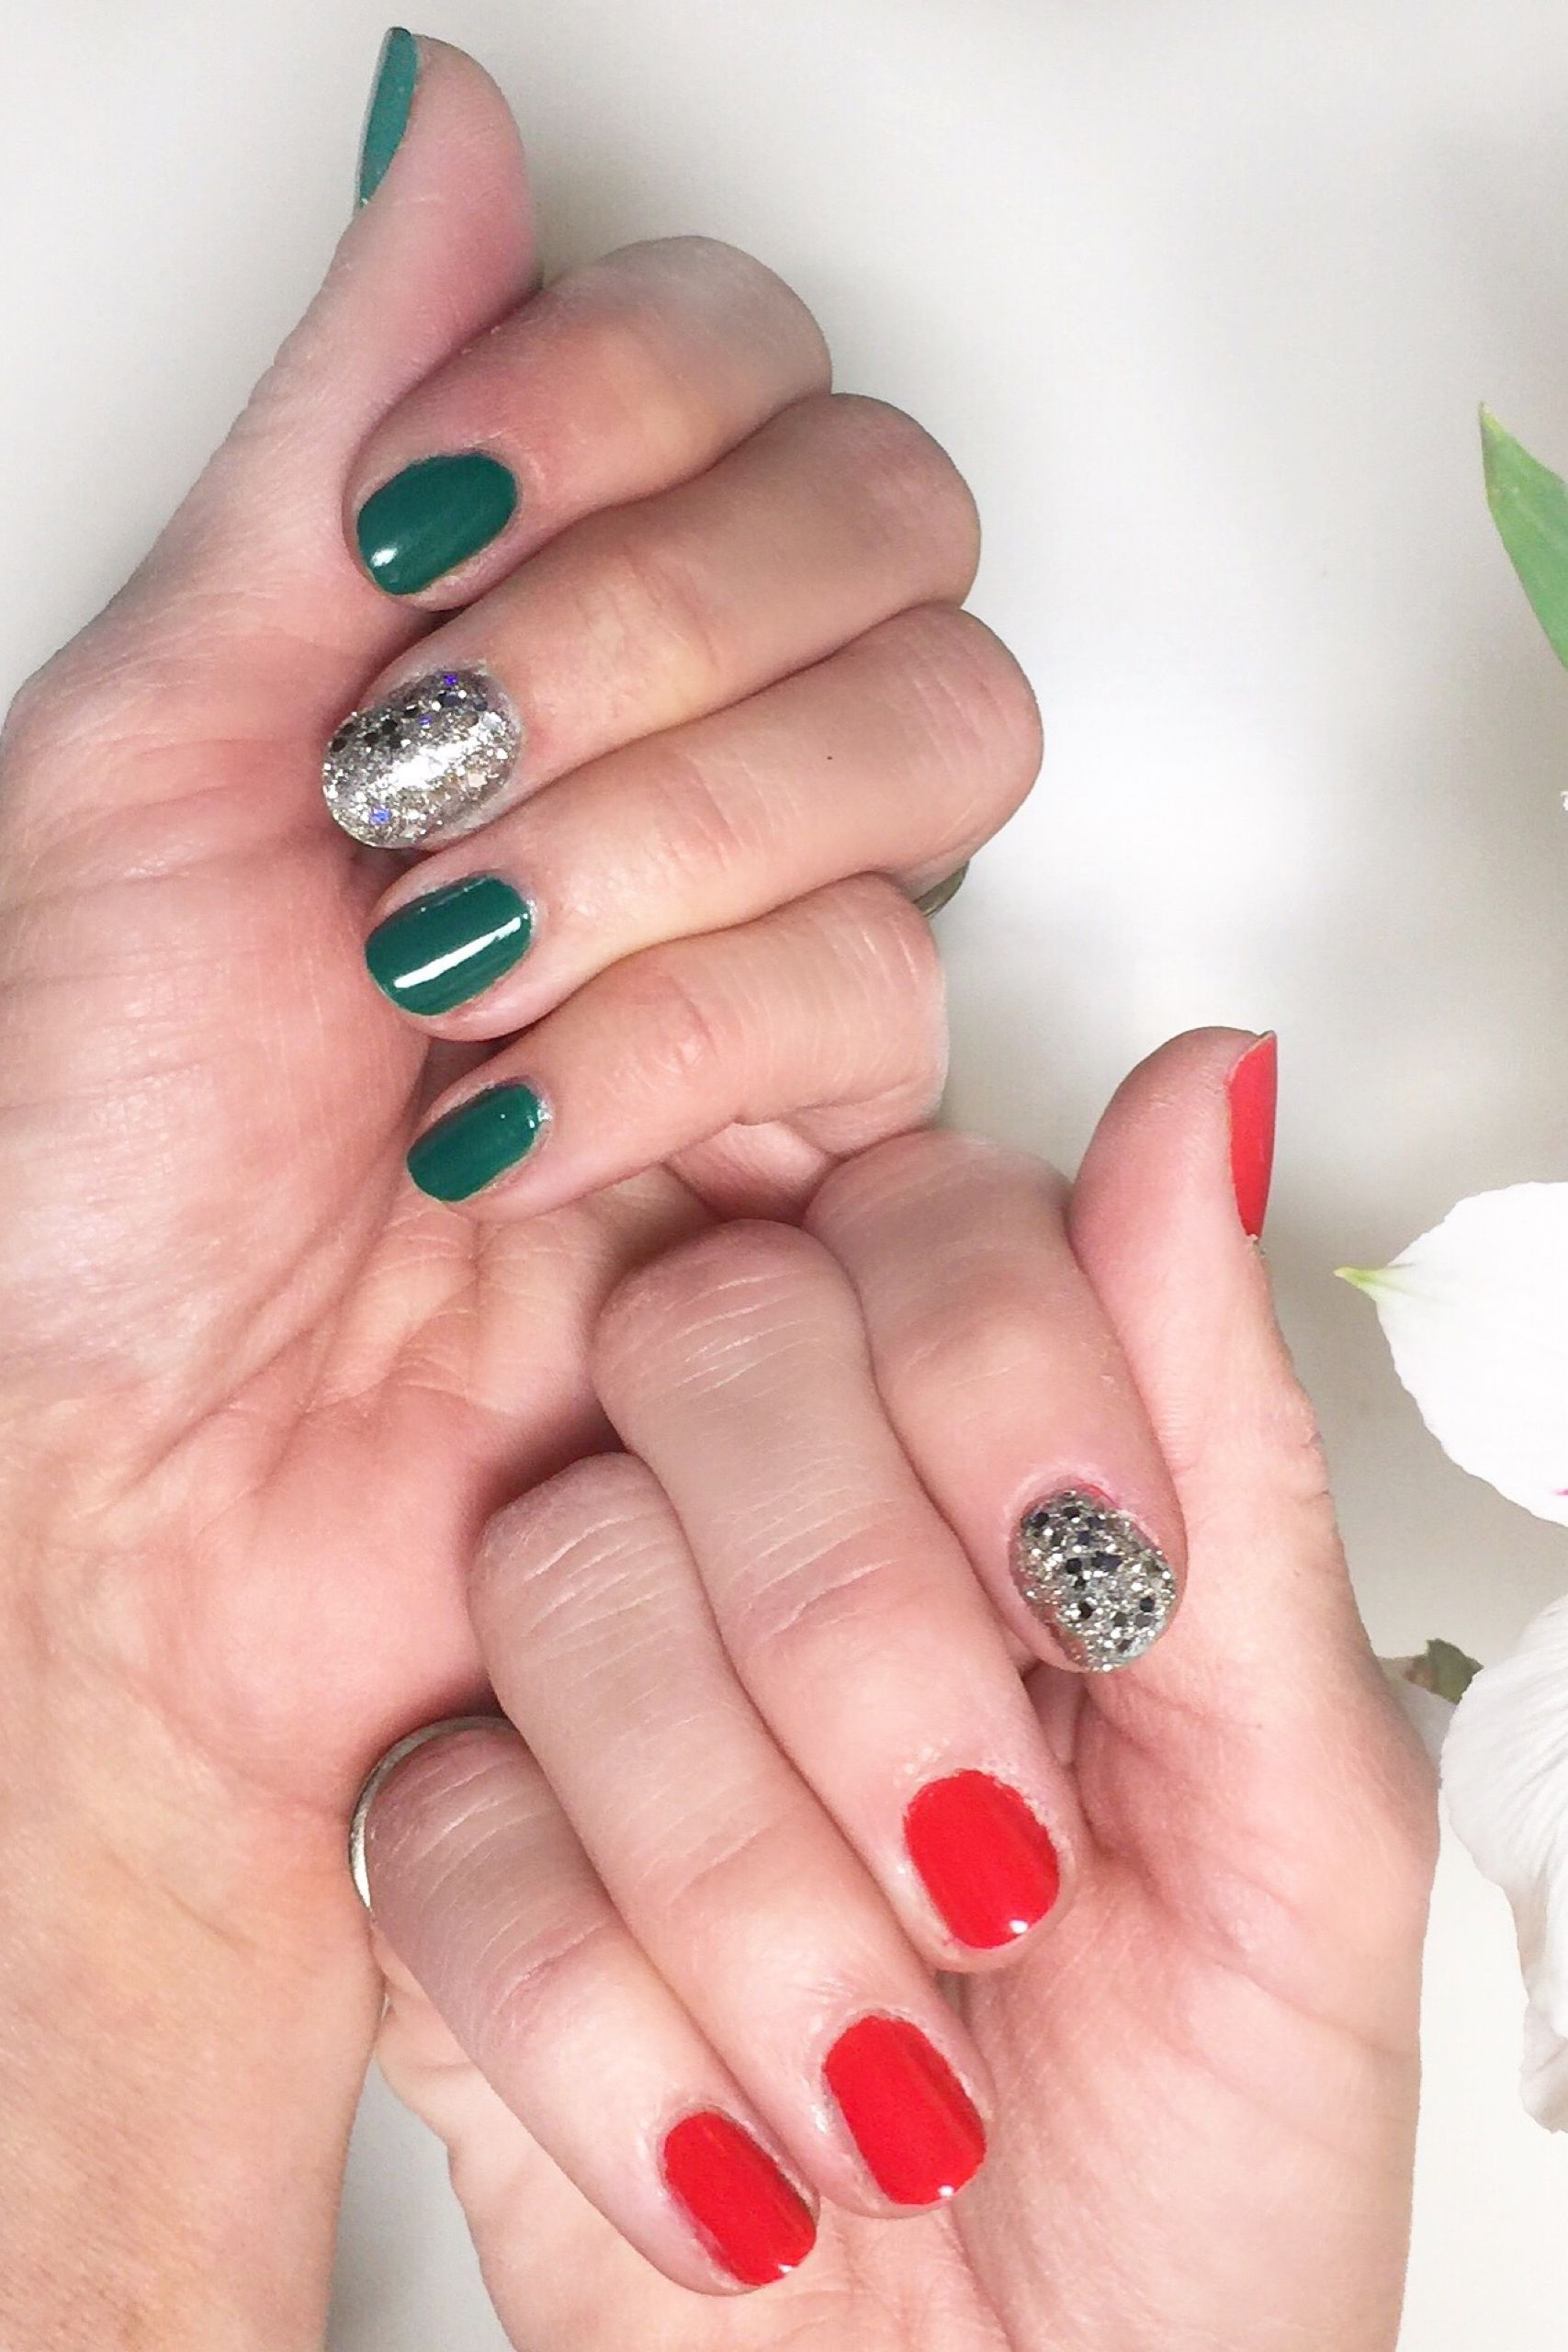 Simple But Festive Christmas Manicure Idea Using Impress Press On Accent Nails In The Glitter Style Impress Nails Impress Nails Press On Fabulous Nails